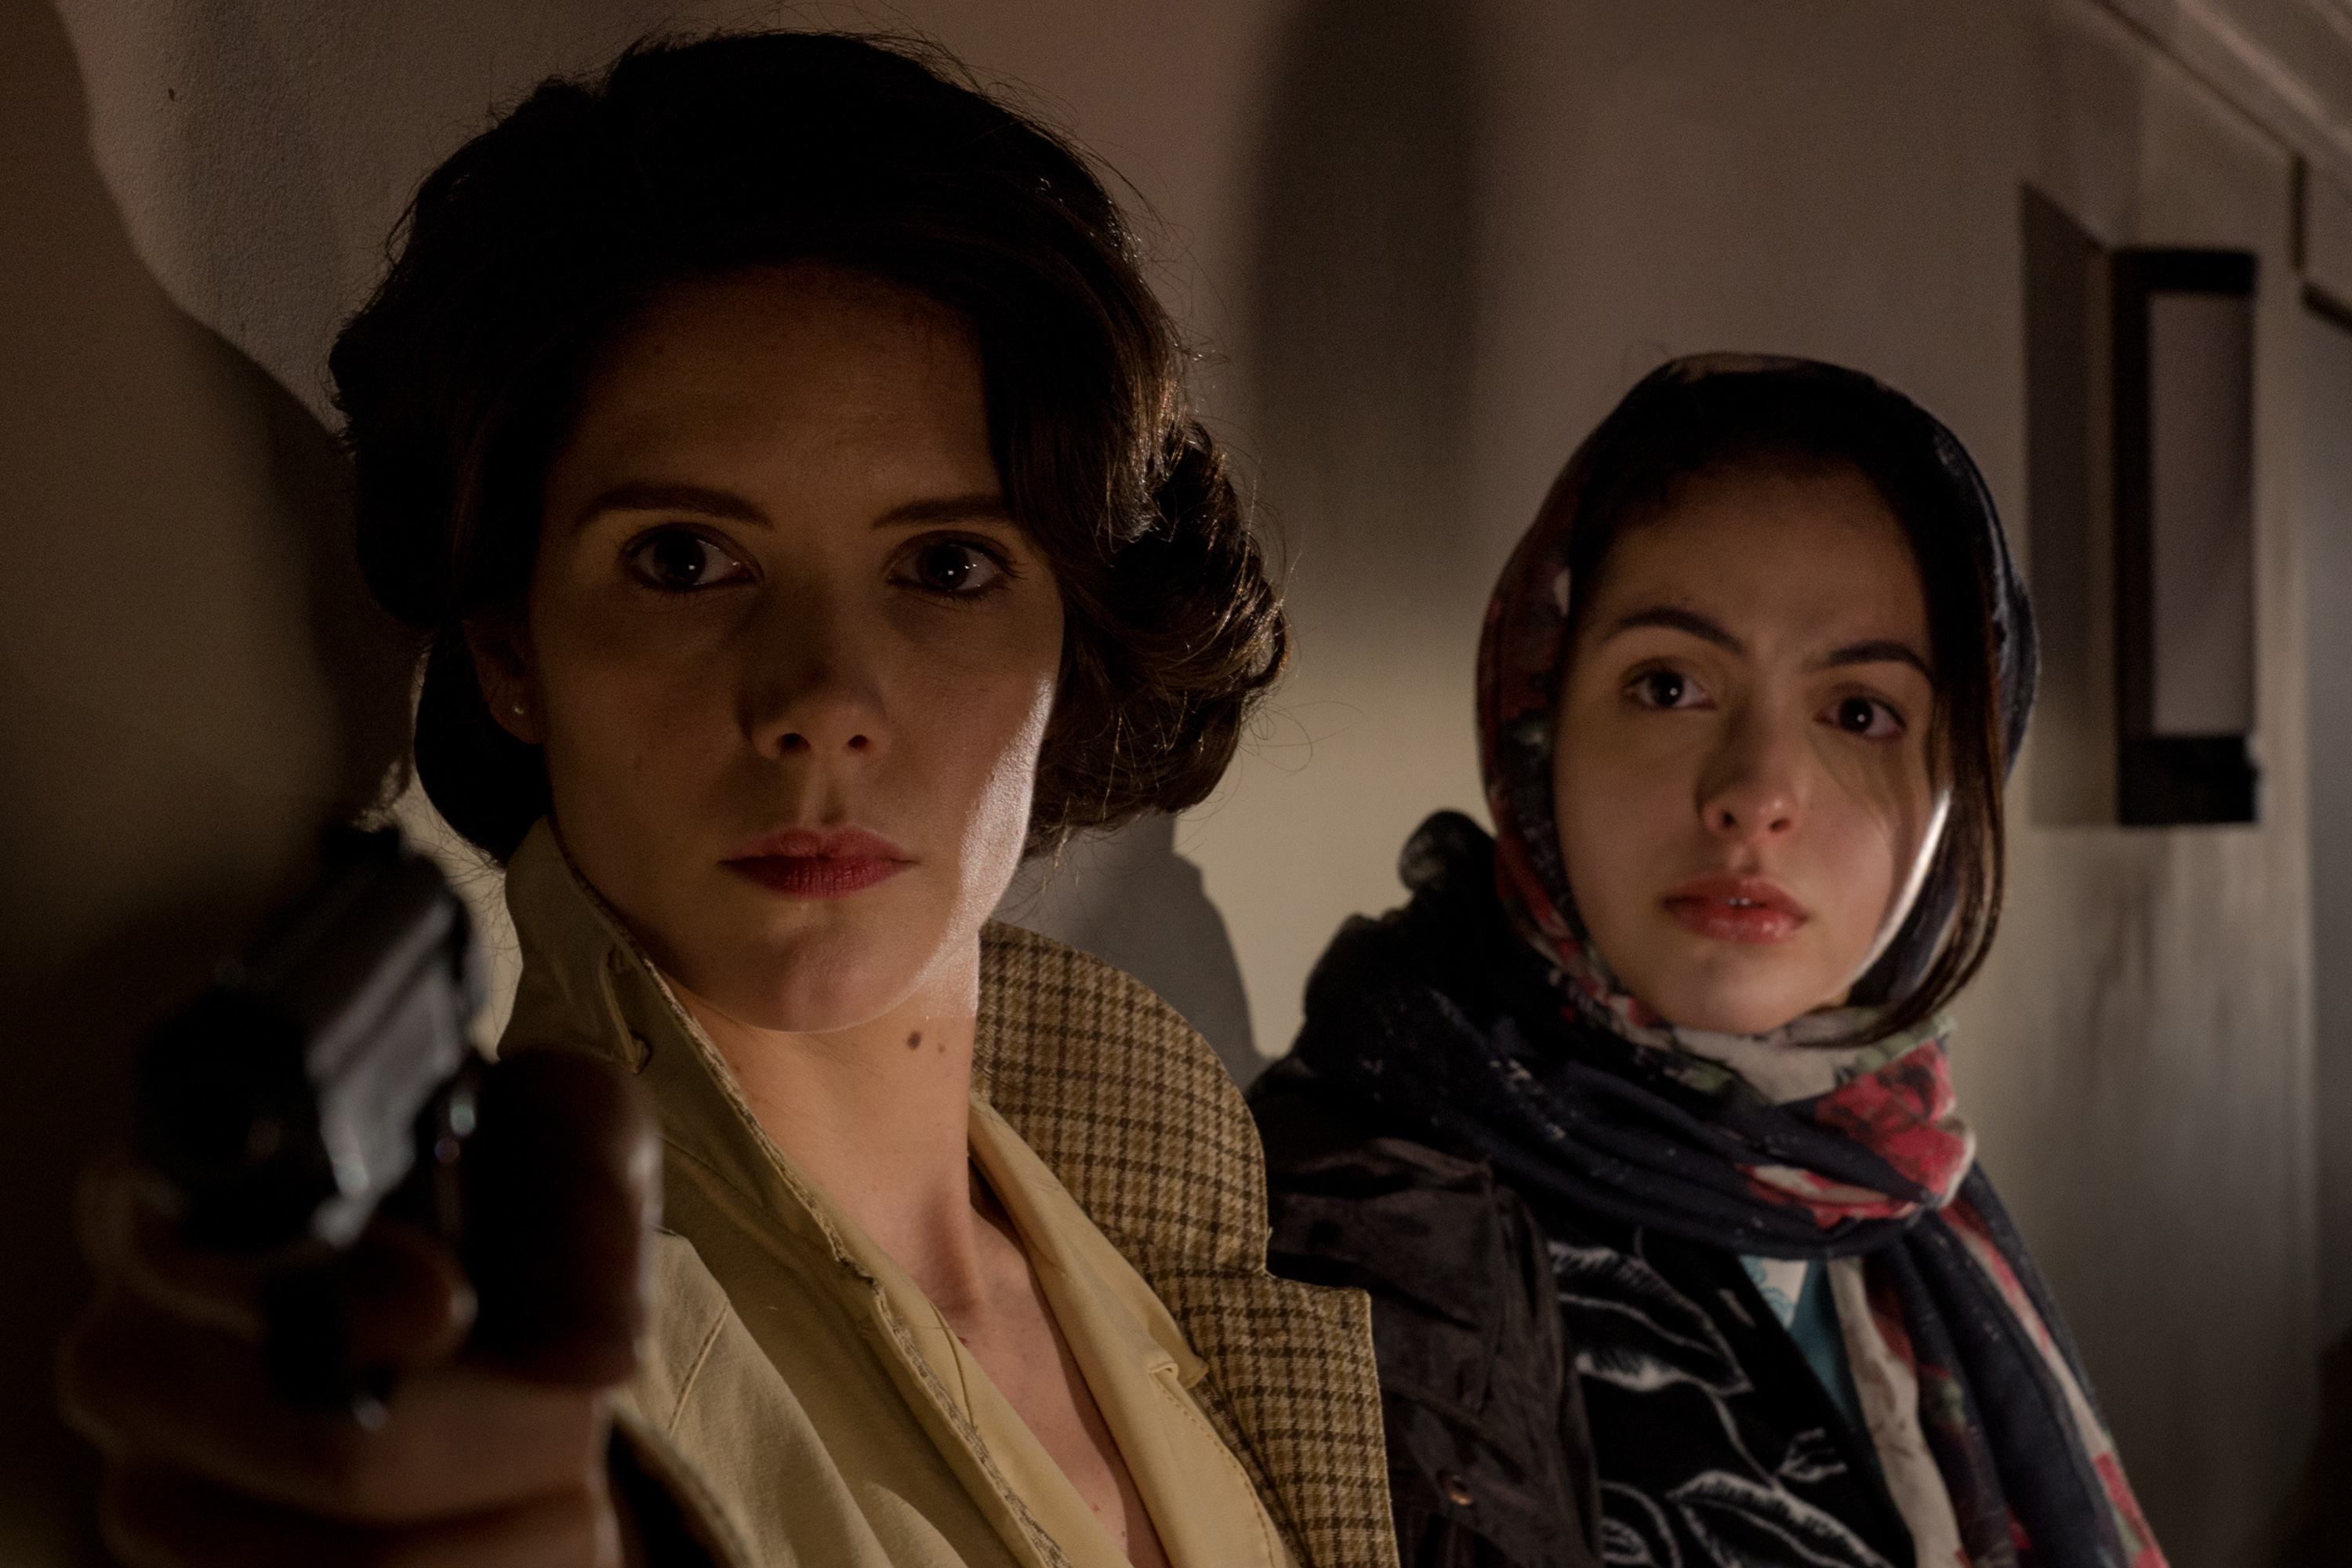 sonya-cassidy-as-elizseva-and-july-namir-as-liliane-on-set-of-astoria-crop